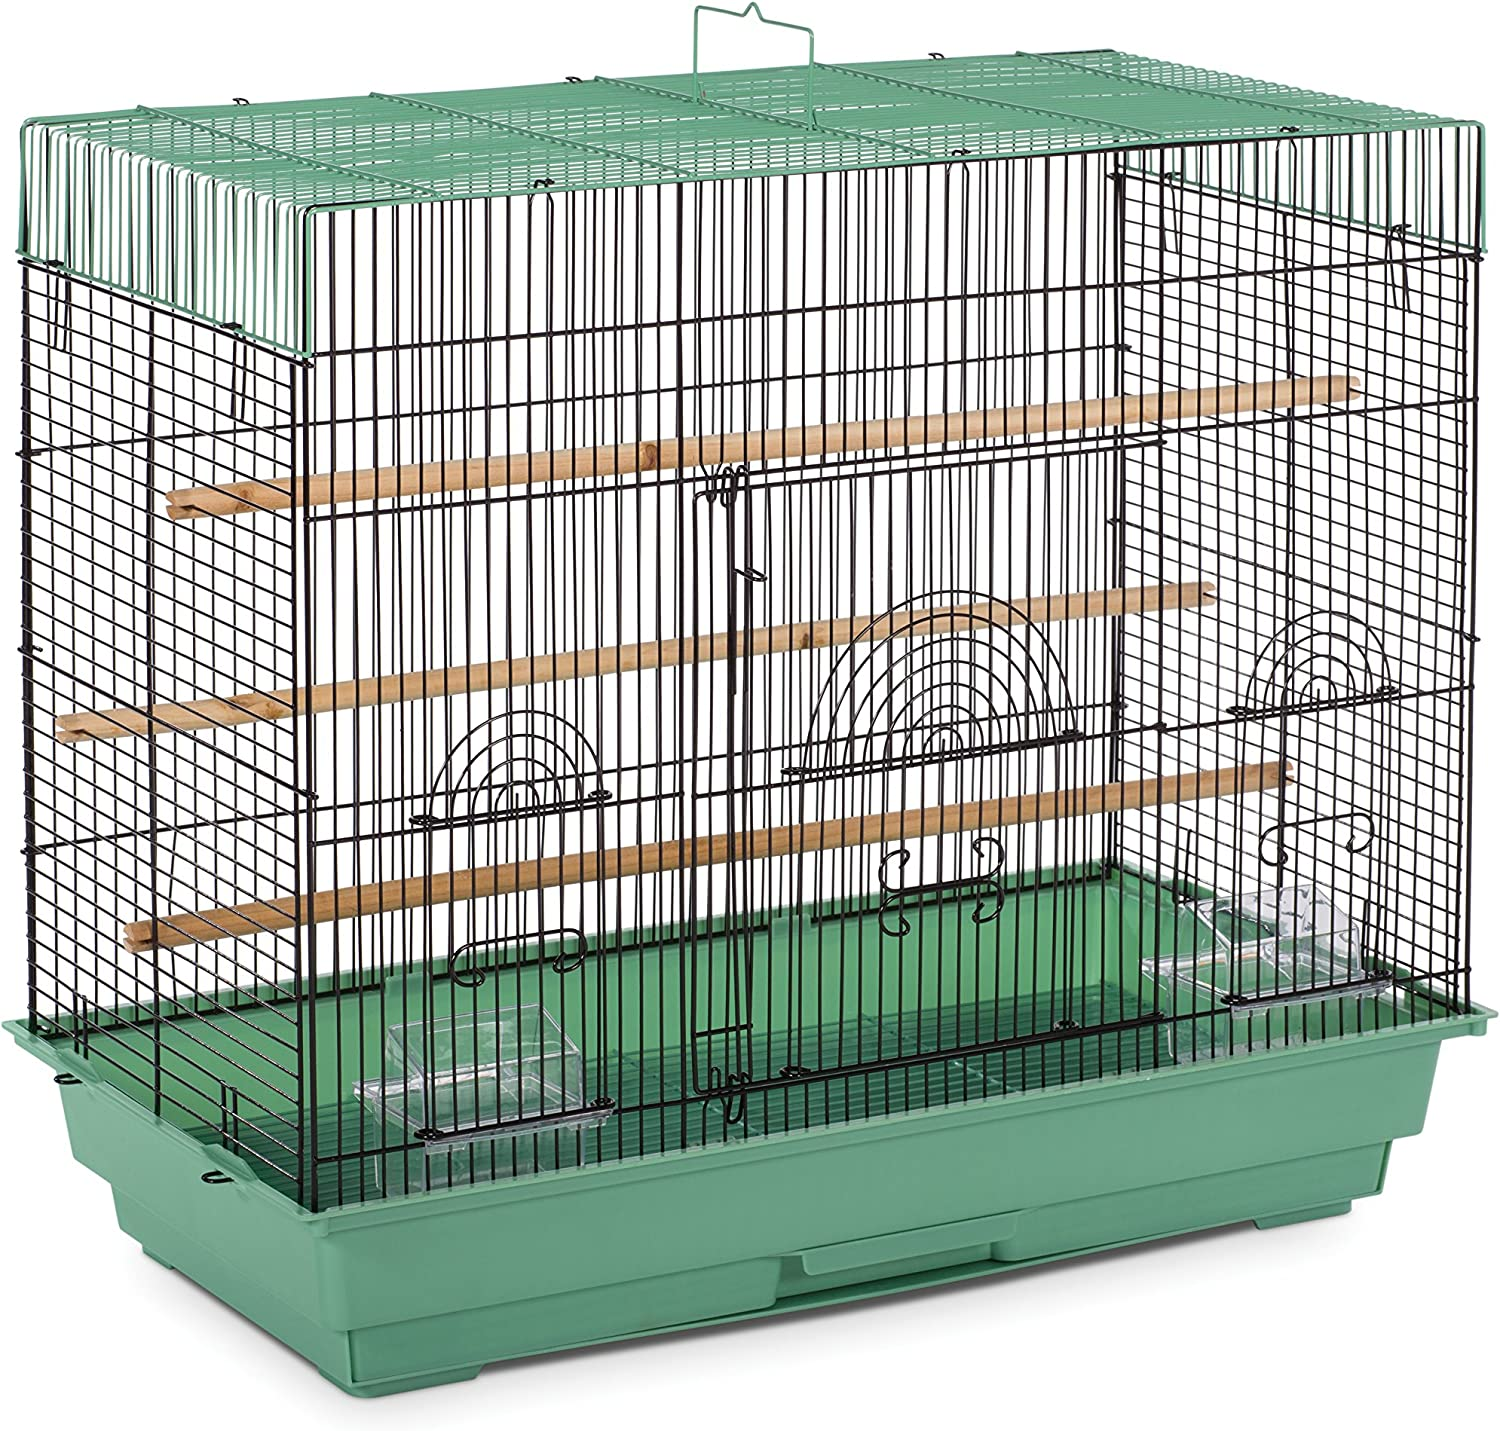 Prevue Hendryx Flight Cage